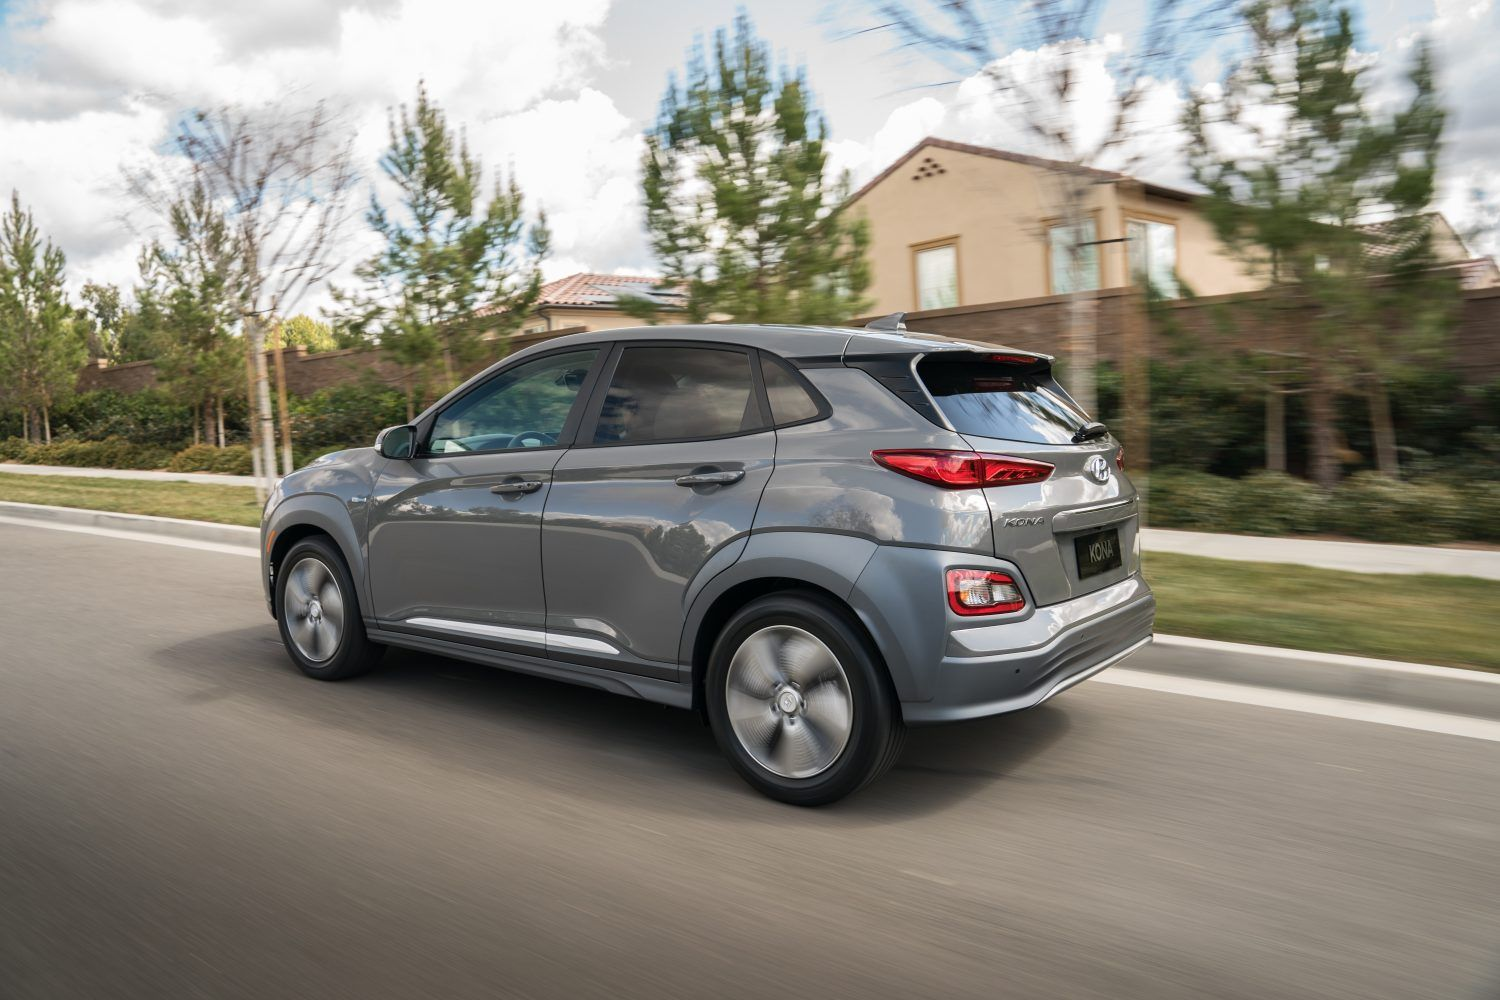 Hyundai Kona Us Price Is 36 450 Minus Incentives For 258 Mile Cuv